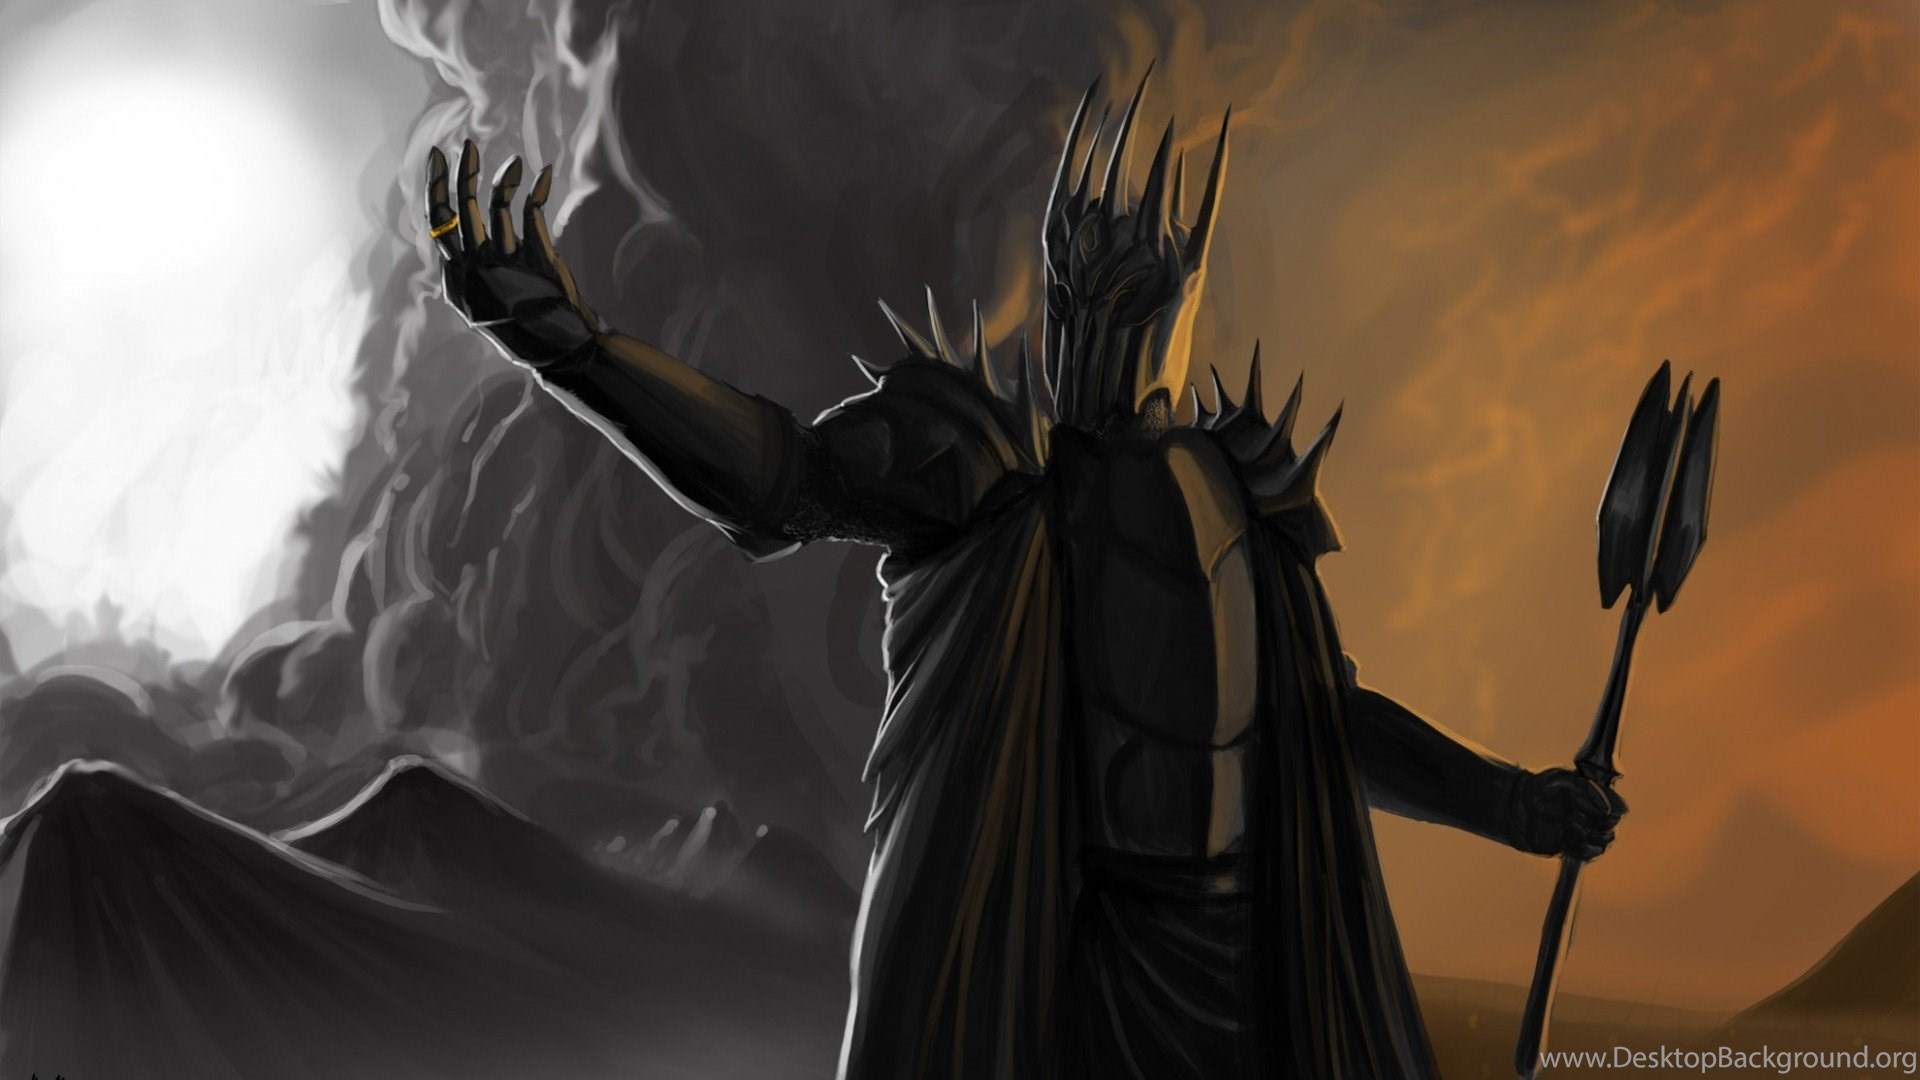 Nazgul In Lord Of The Rings Hd Wallpapers Desktop Background